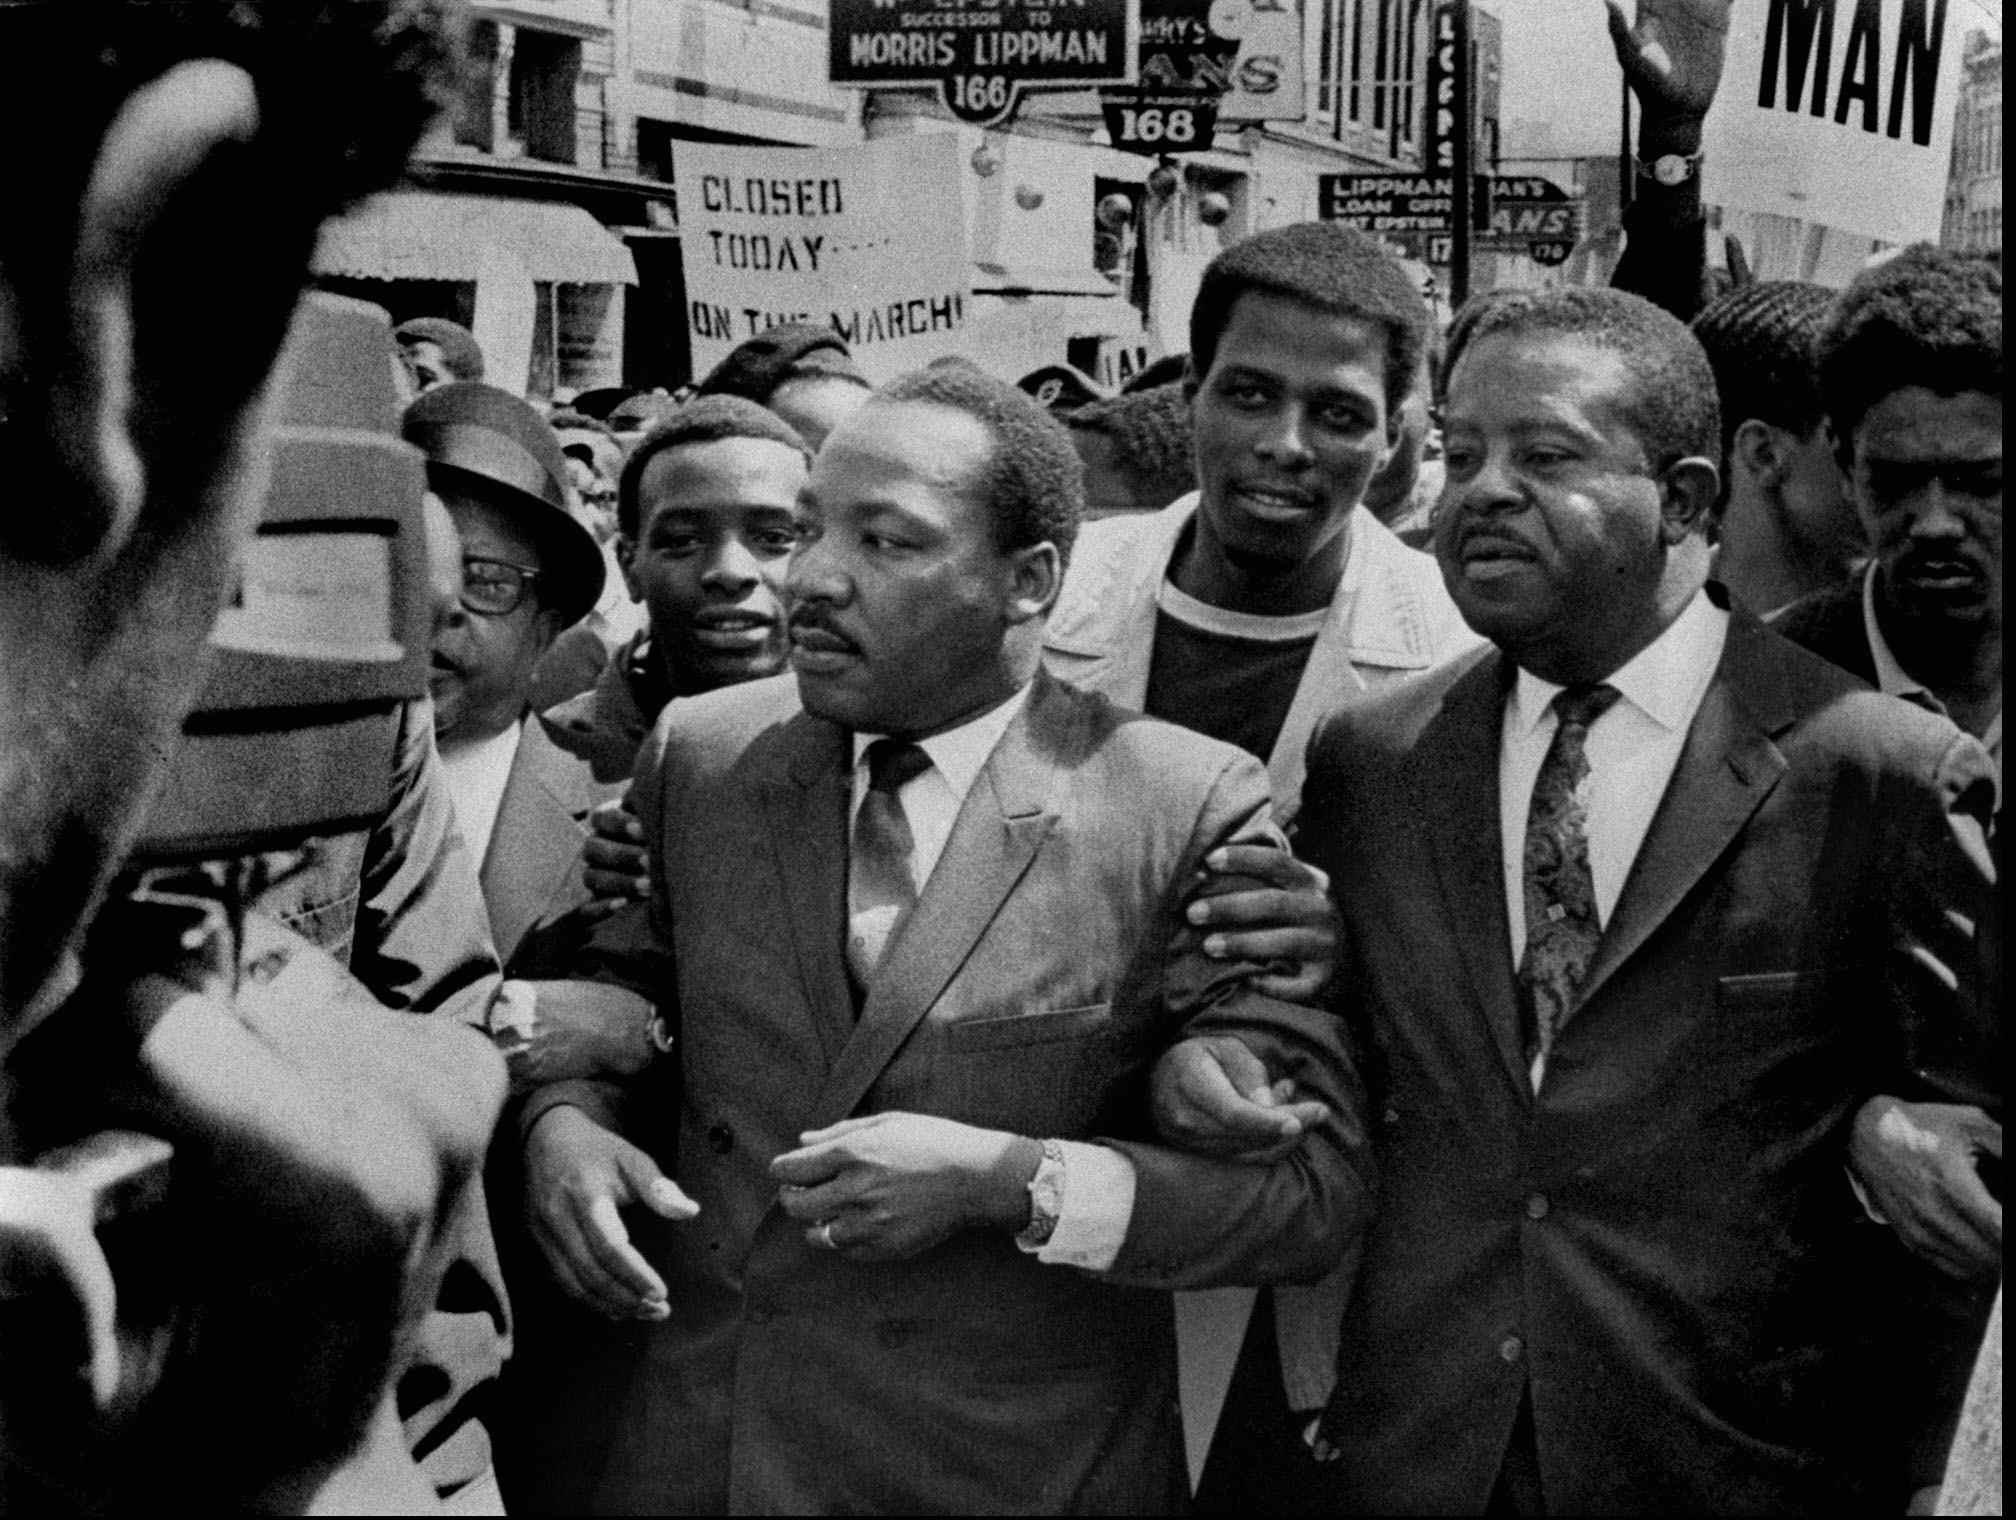 Dr. Martin Luther King Jr. and Rev. Ralph Abernathy, right, lead a march on behalf of striking Memphis sanitation workers on March 28, 1968. The dignity of the march soon gave way to disorder as a group of about 200 youths began breaking windows and looting. King, who agonized over what had happened, was killed within the week.